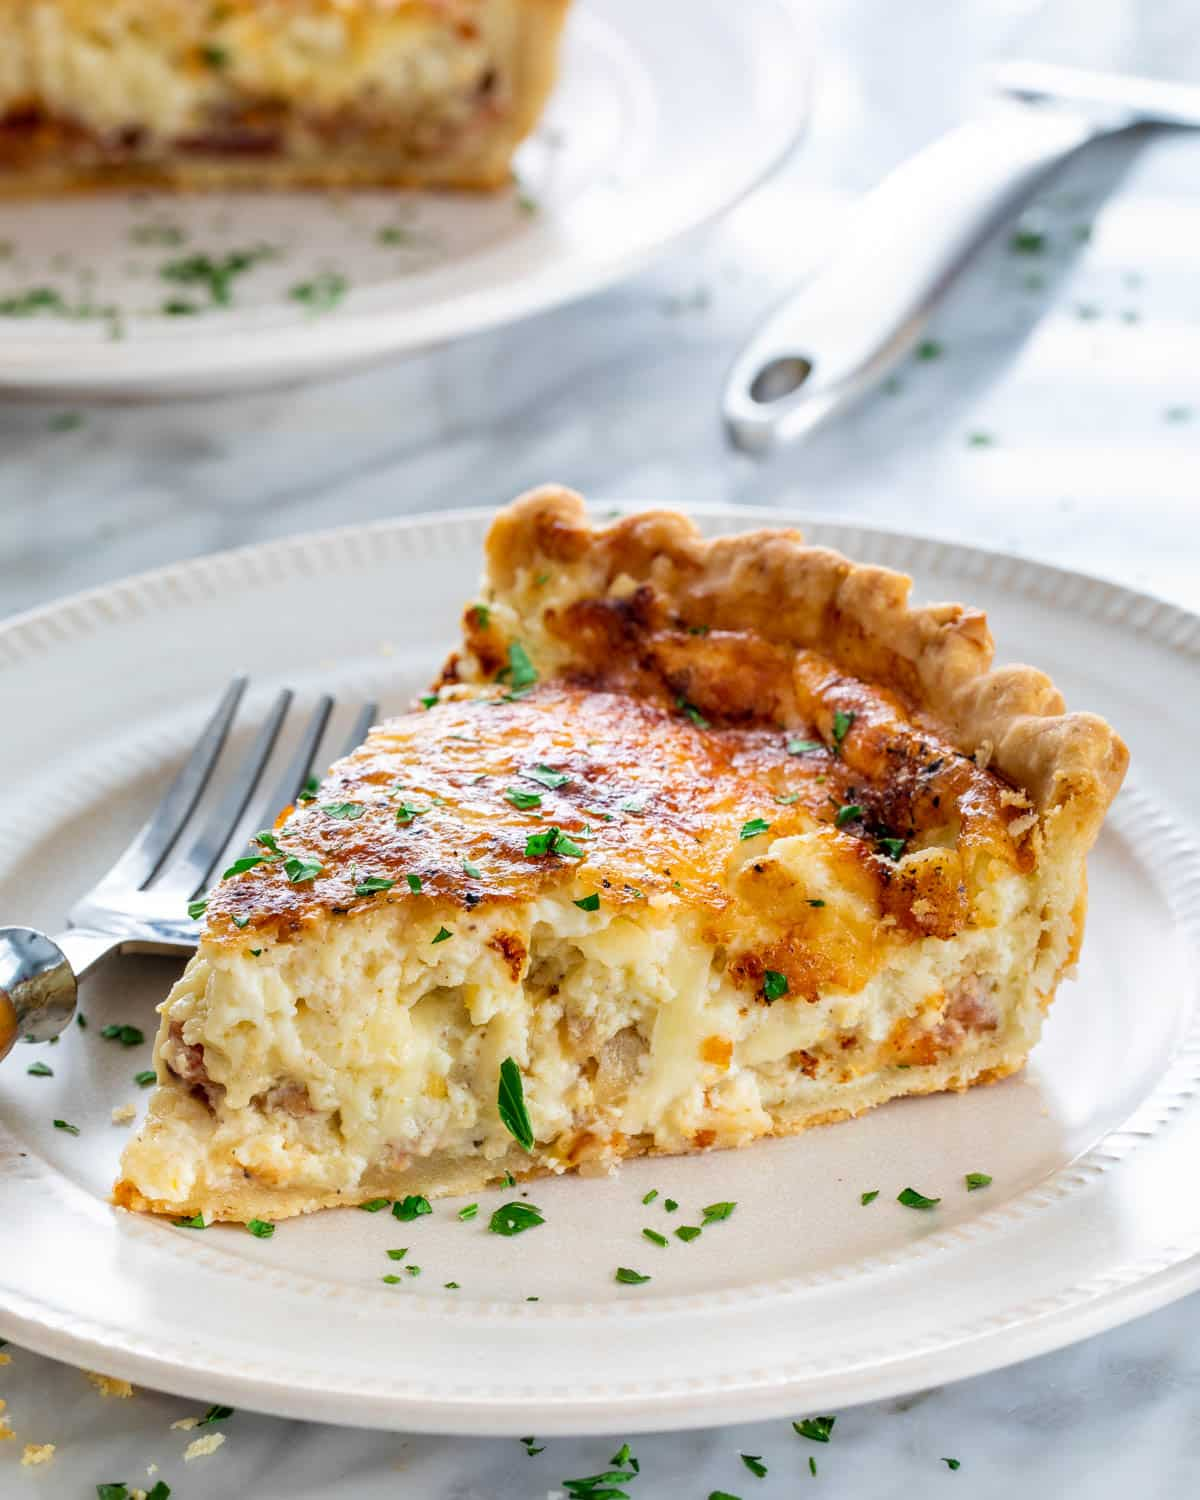 a slice of quiche on a white plate